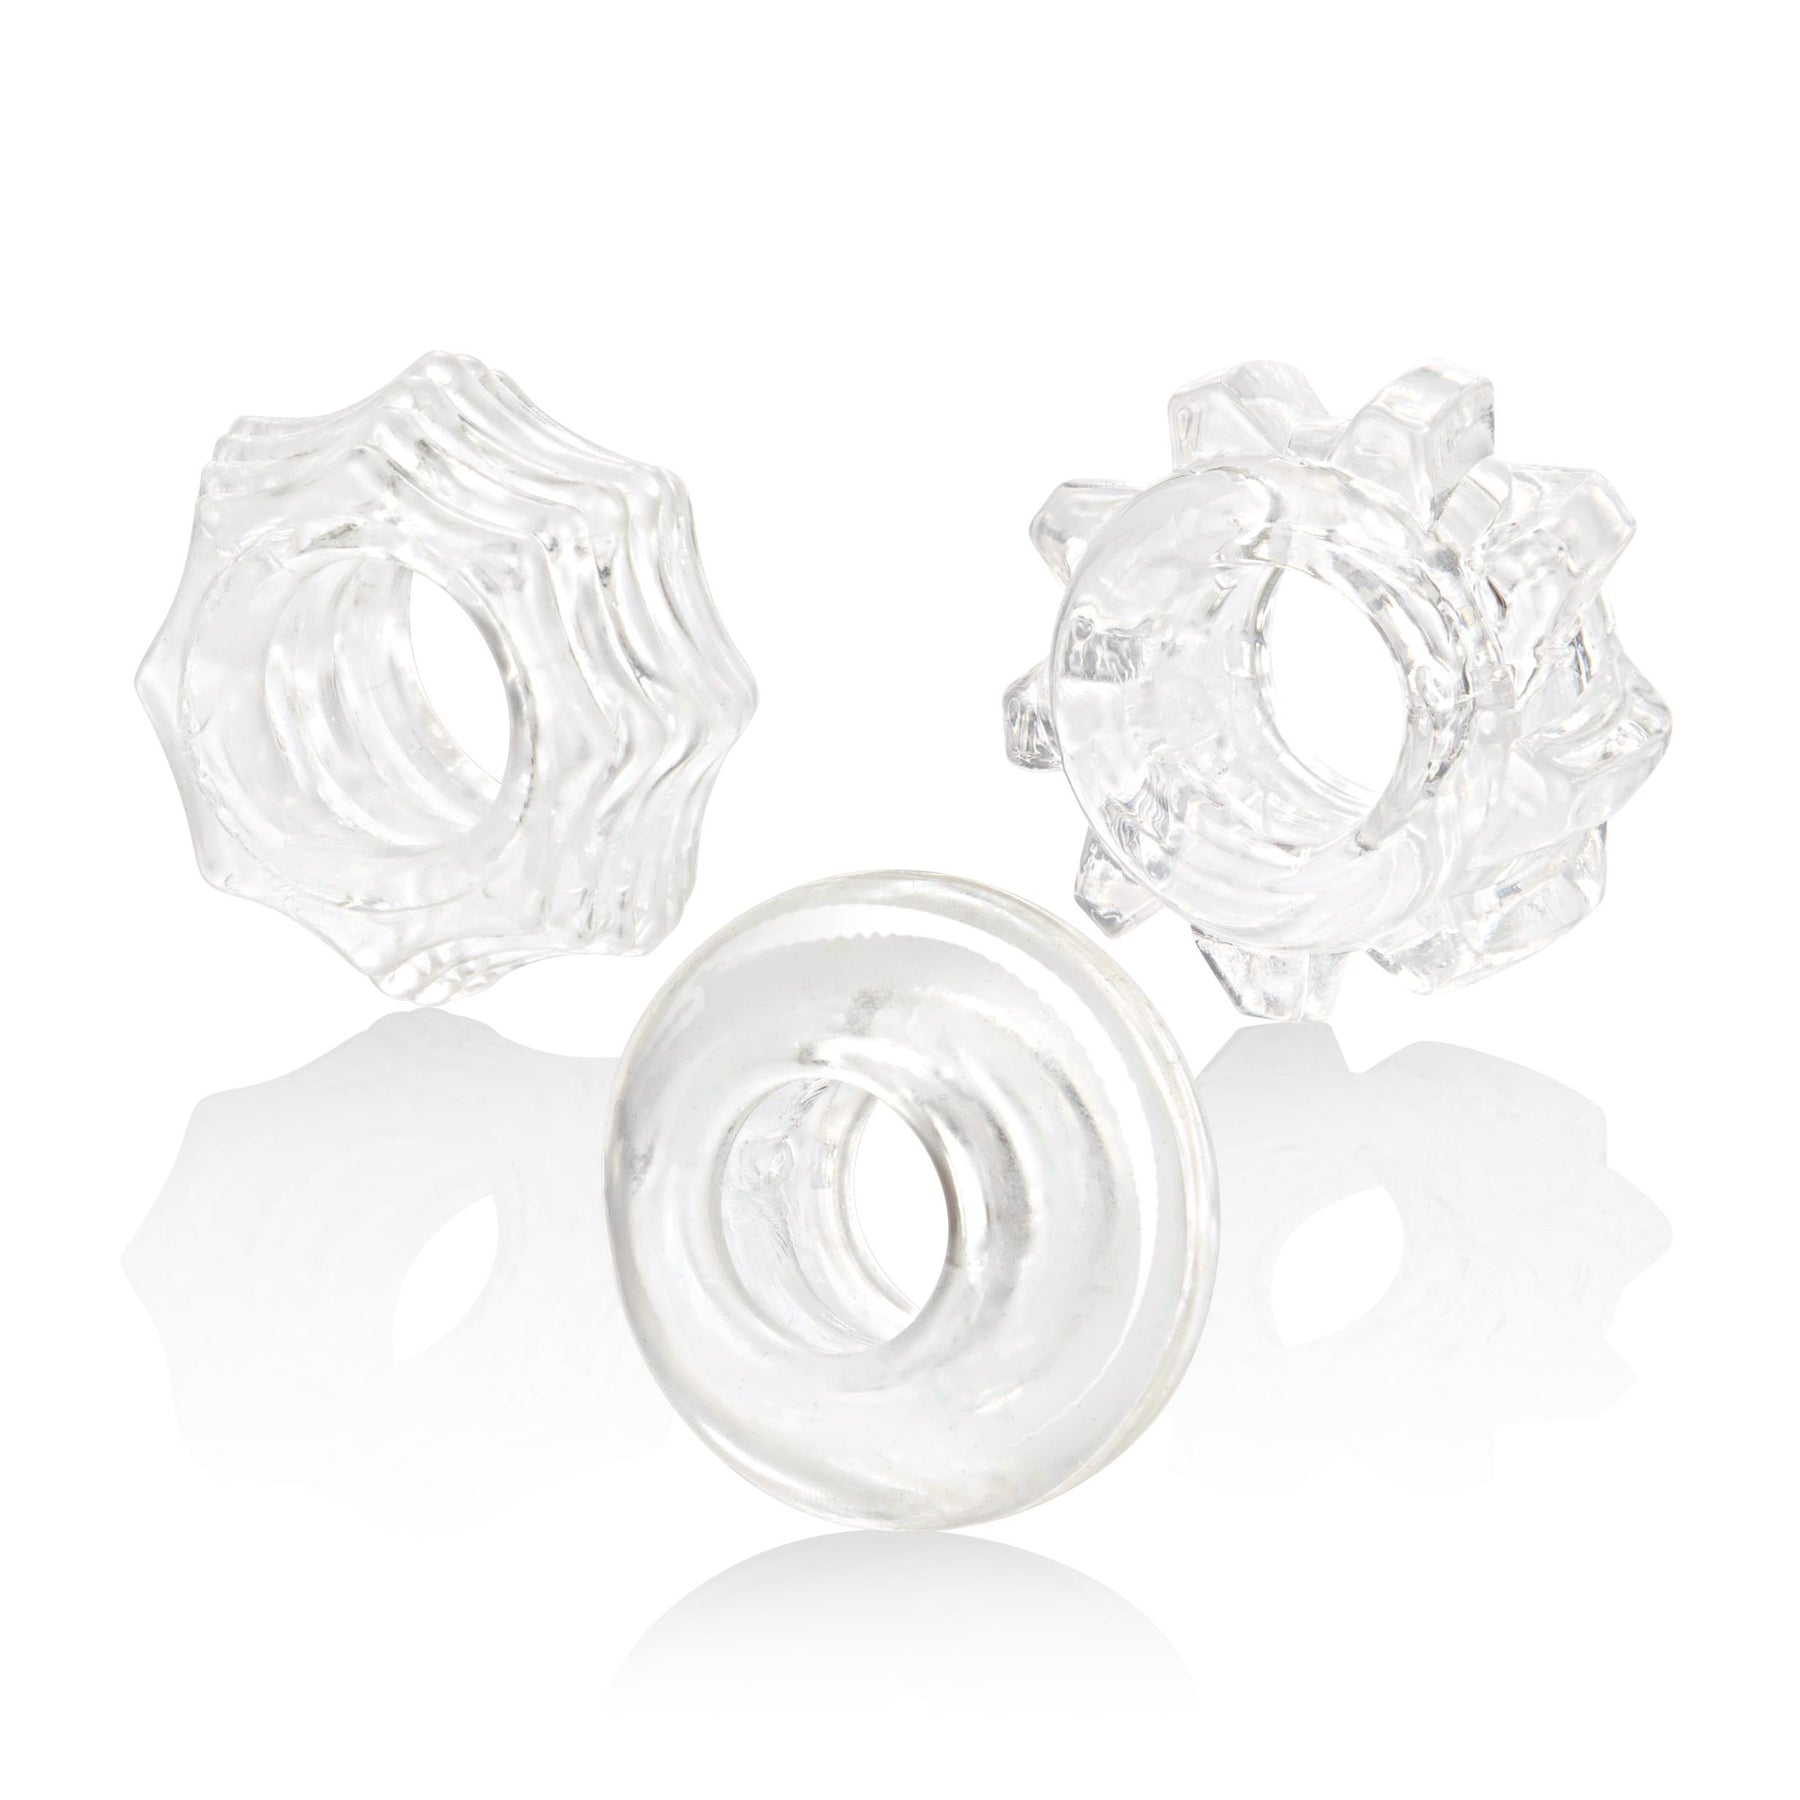 Reversible Ring Set - Clear